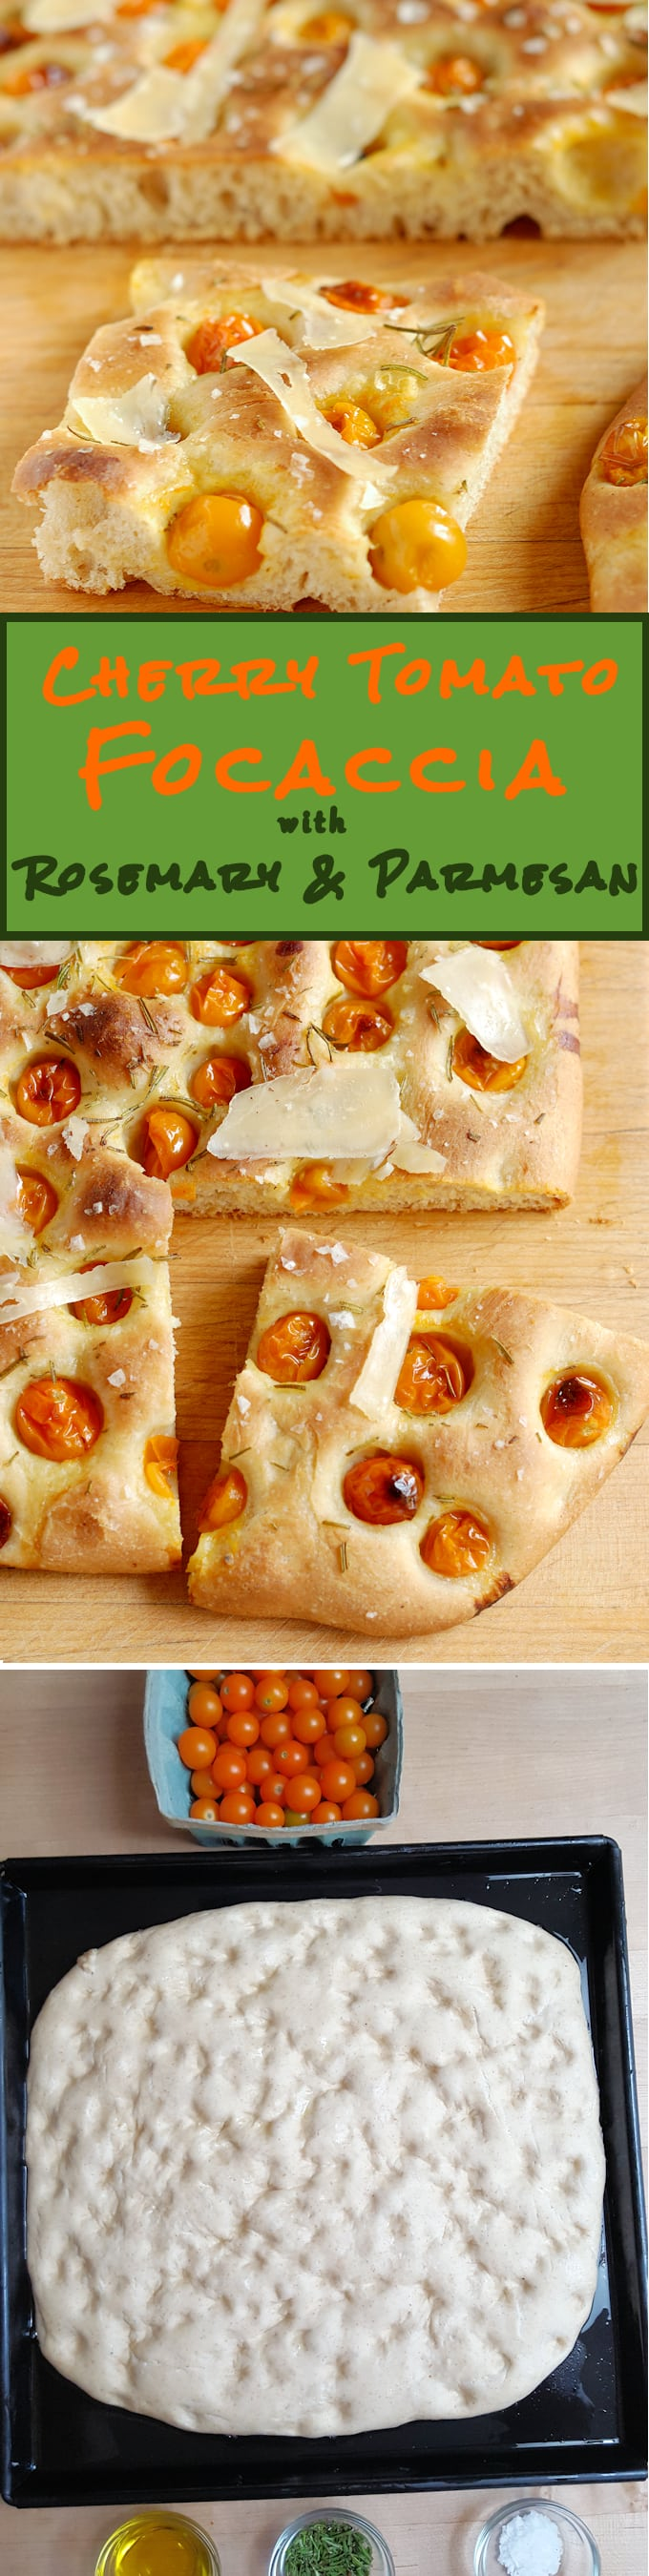 Bursts of sweet cherry tomato with fragrant rosemary on a light and chewy crust - Cherry Tomato Focaccia with Rosemary & Parmesan is a great snack, or have it for lunch, or serve it with salad for a light dinner.